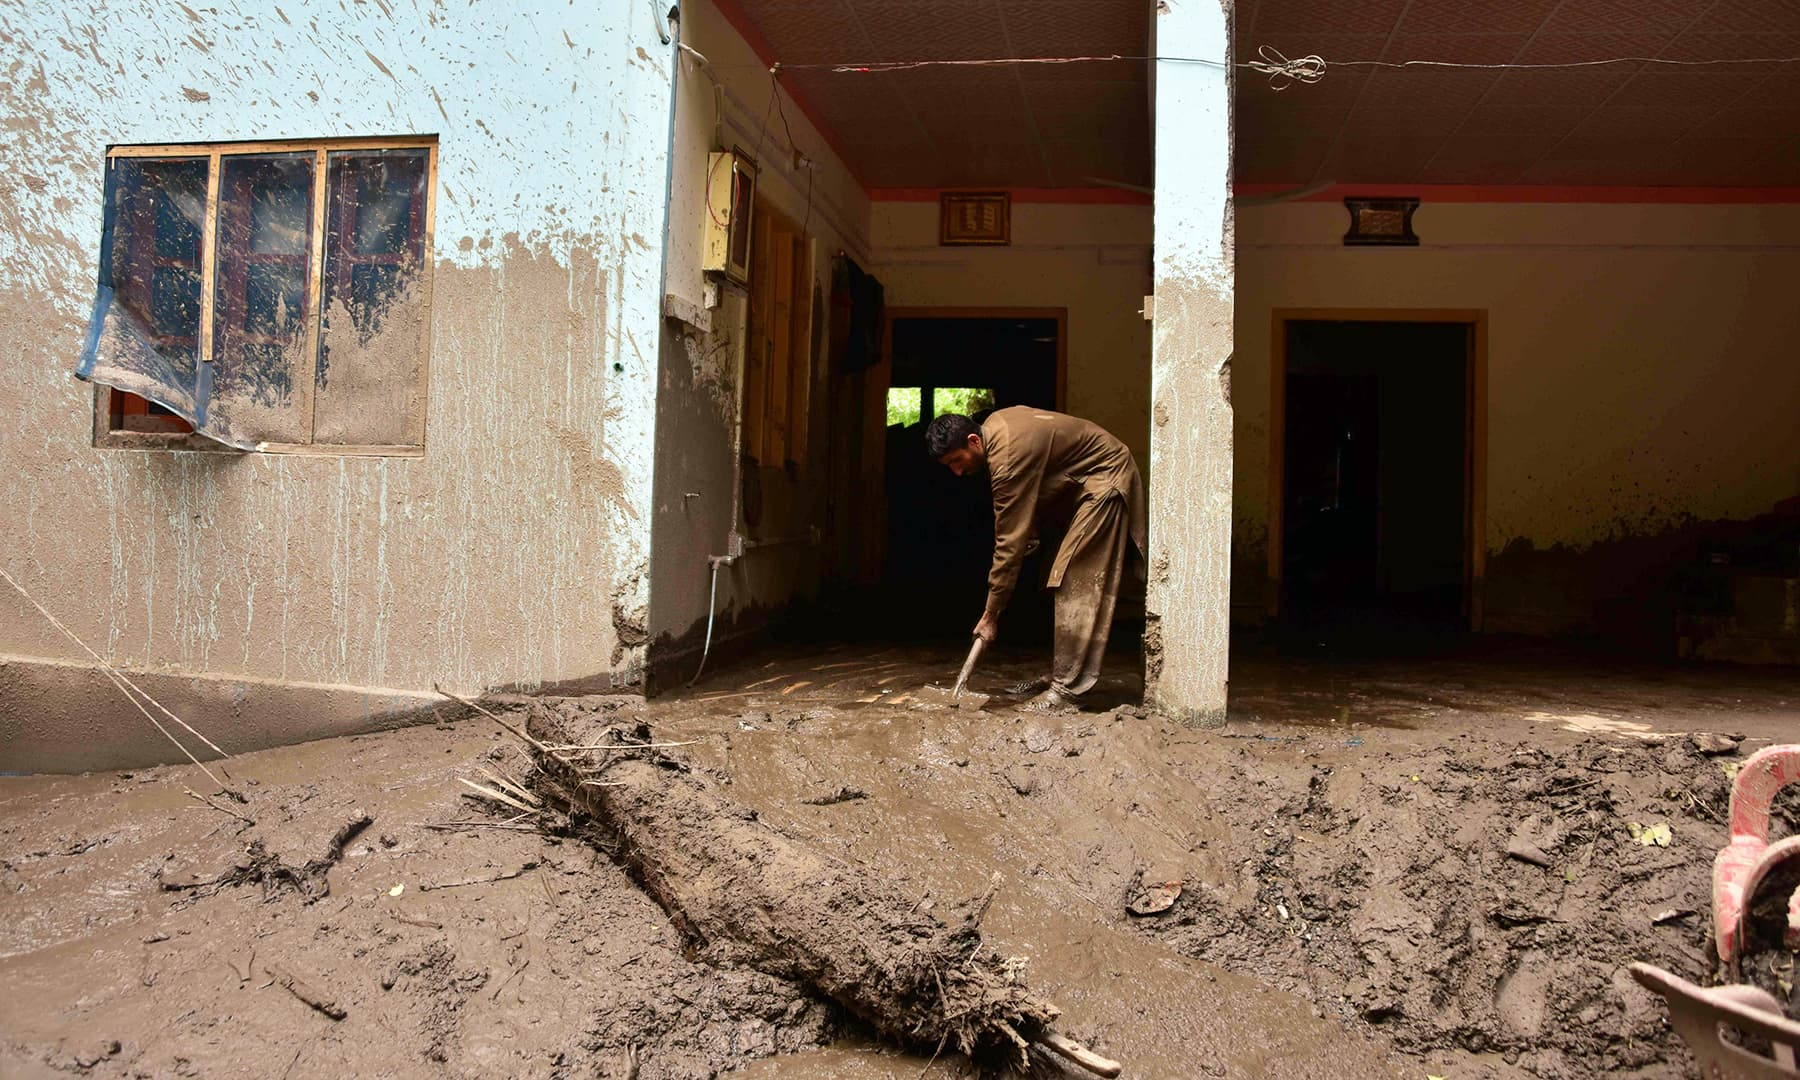 A Kashmiri removes mud from his house following heavy monsoon rains in Neelum valley. — AFP